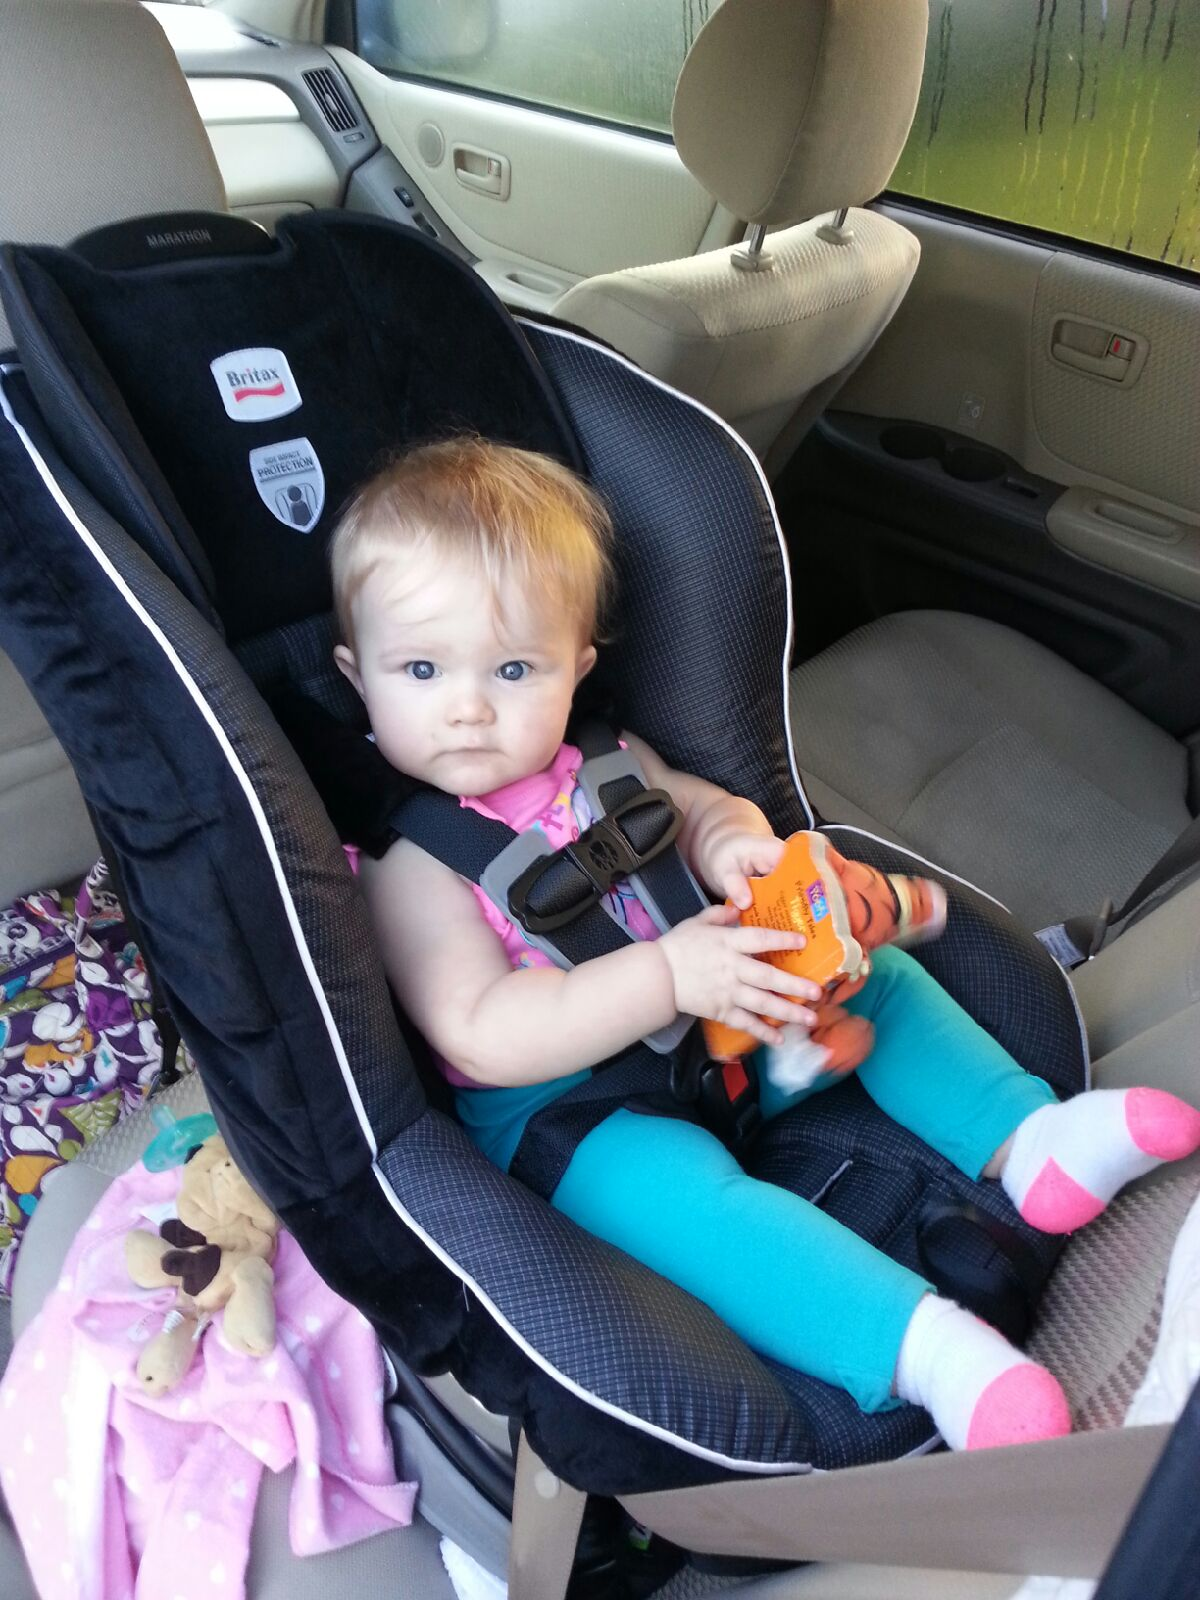 britax car seat review | One Moms World Mom Blog - Jen Houck